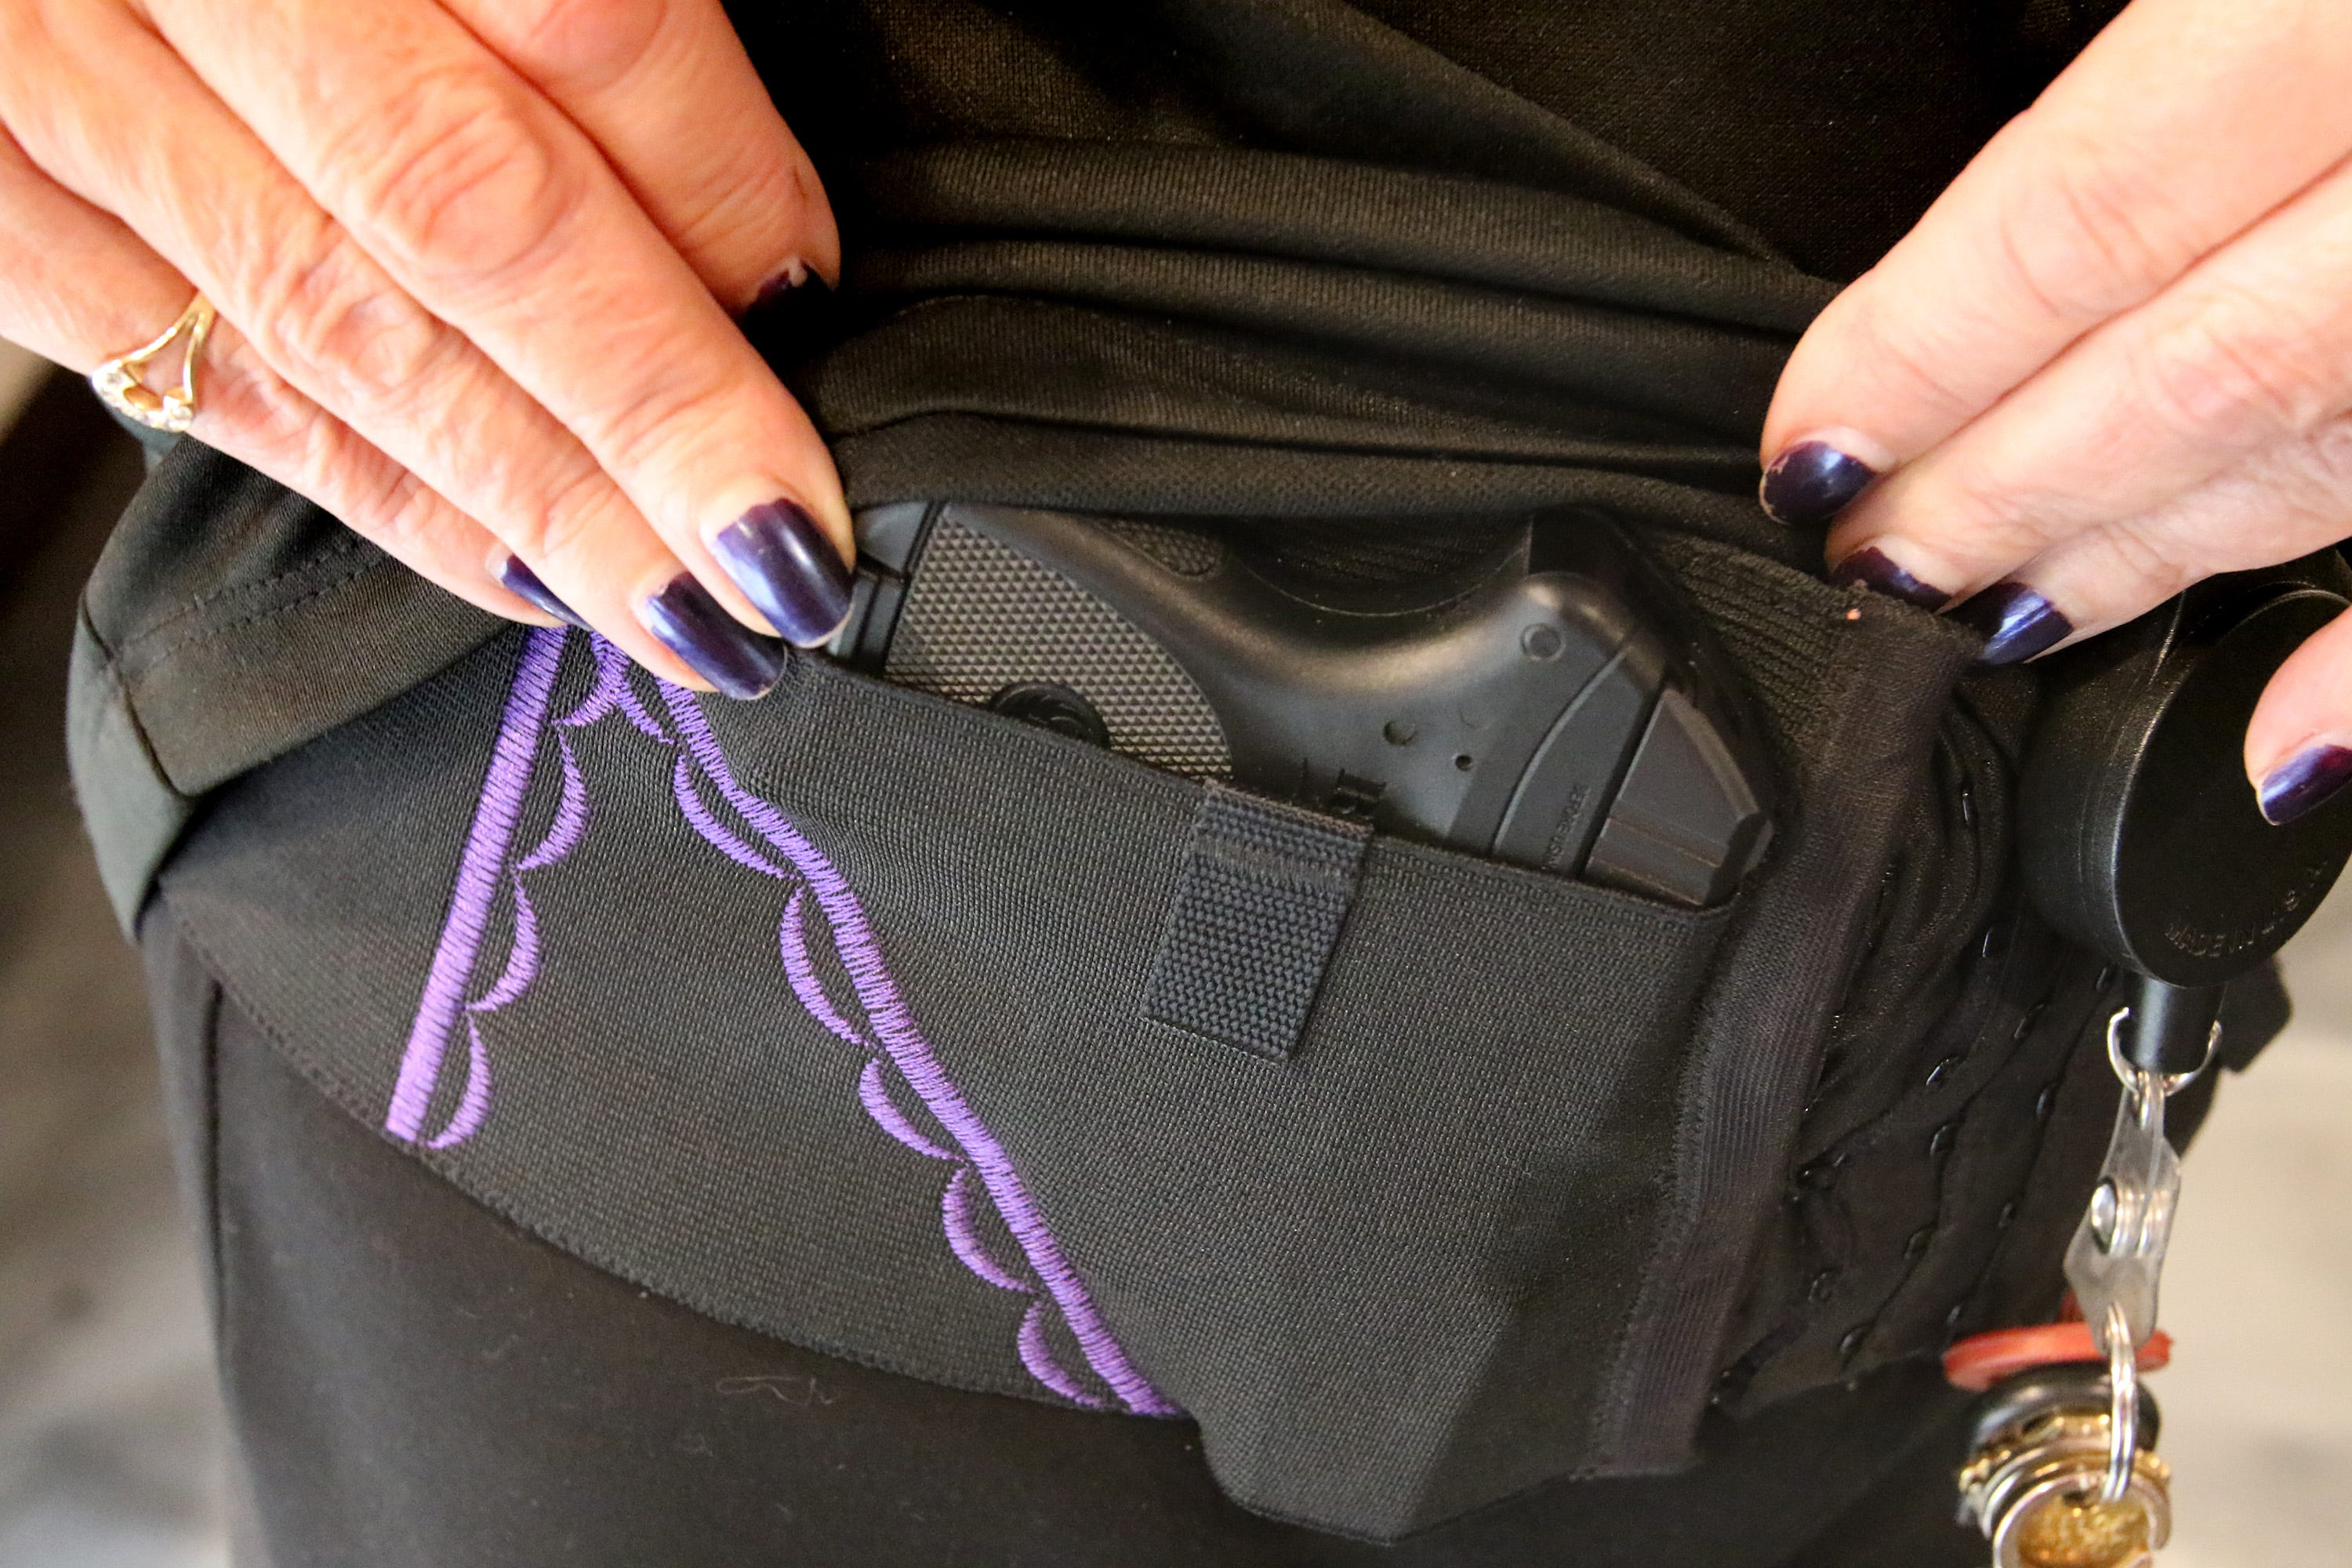 Cheryle Rebholz shows a conceal carry holster made specifically for women and offered at Bear Arms in Mequon, a boutique indoor shooting range that serves the family market.